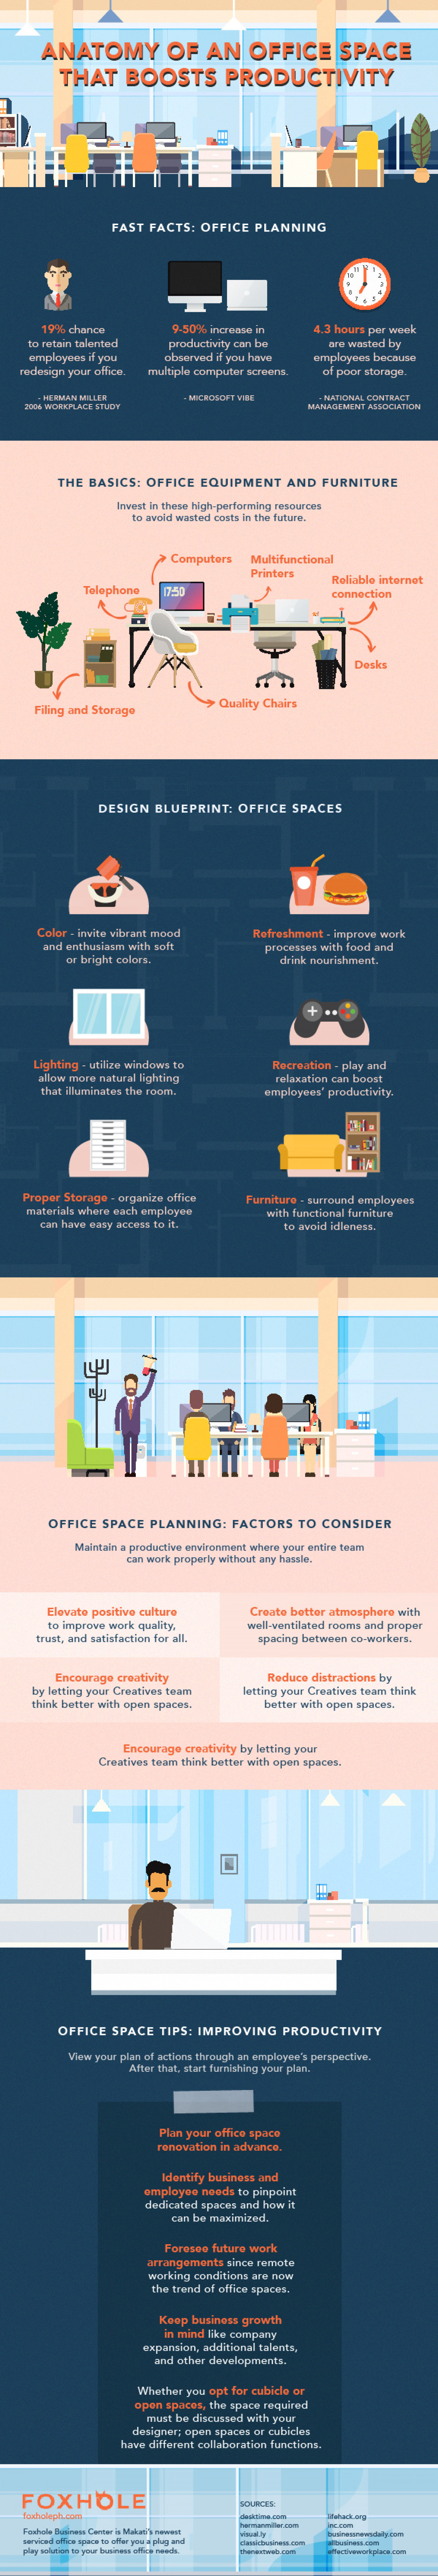 Anatomy of an Office Space that Boosts Productivity  Infographic